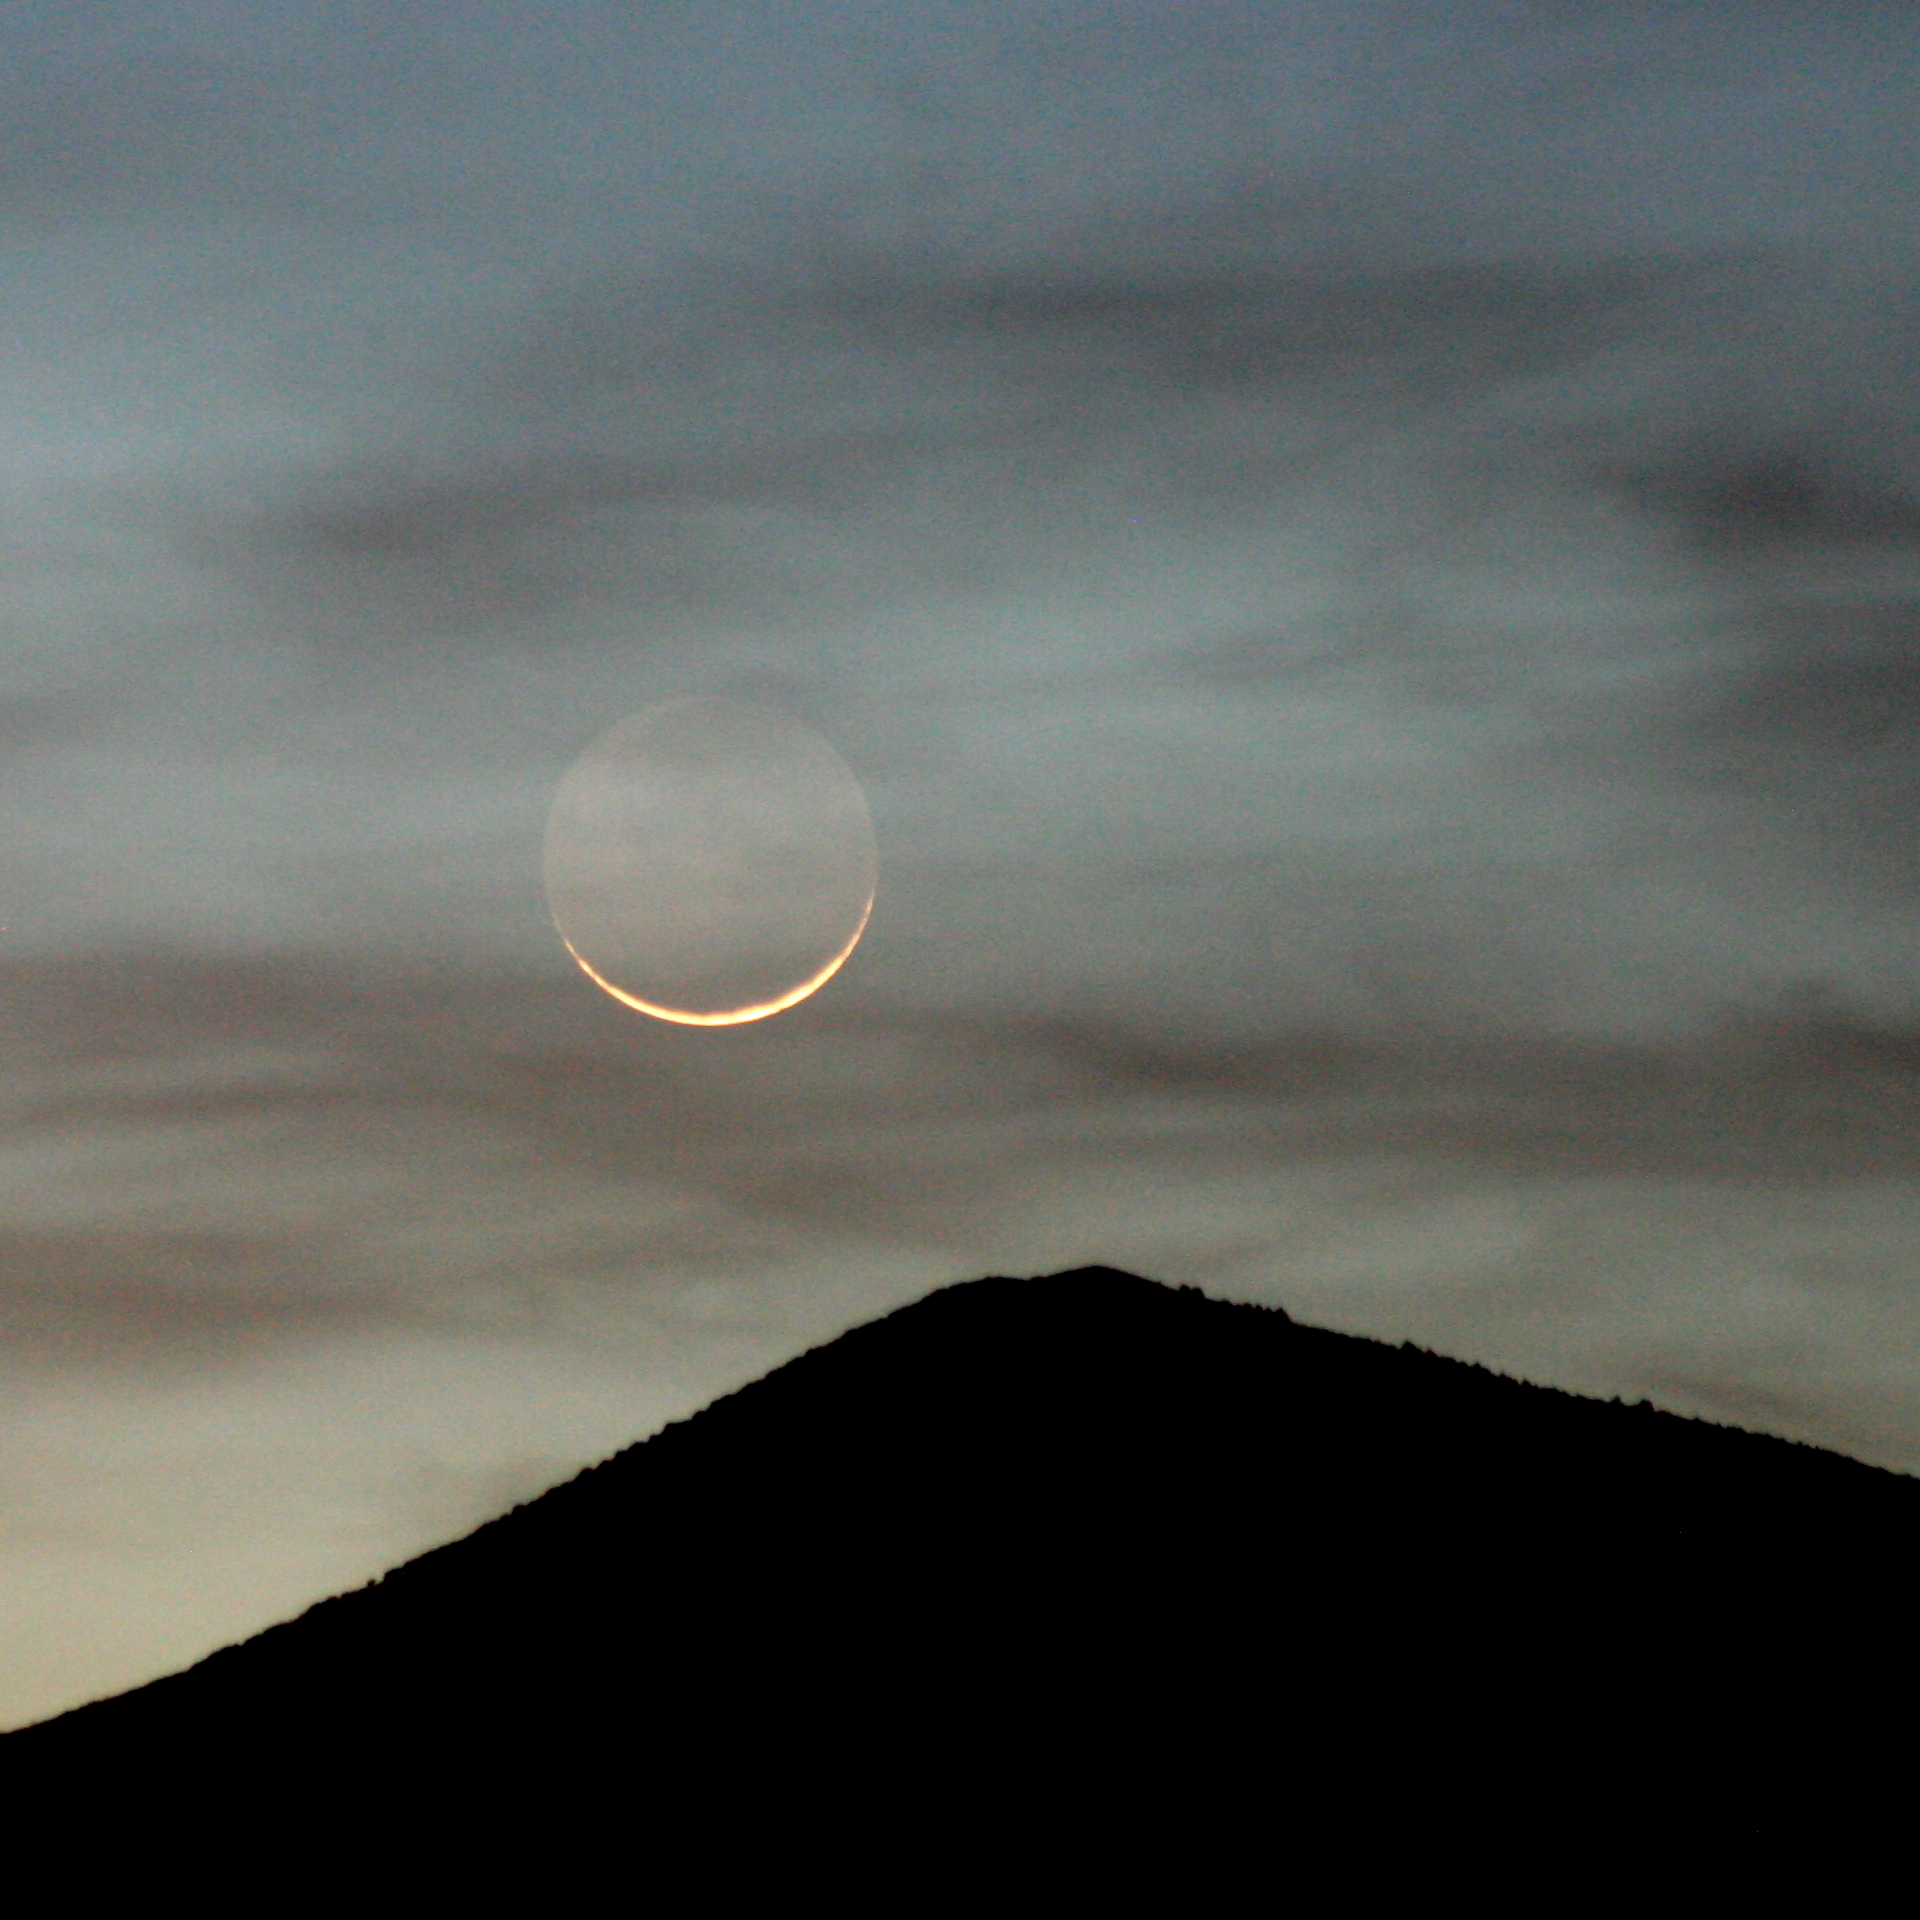 Moon and thin clouds above a single mountain summit